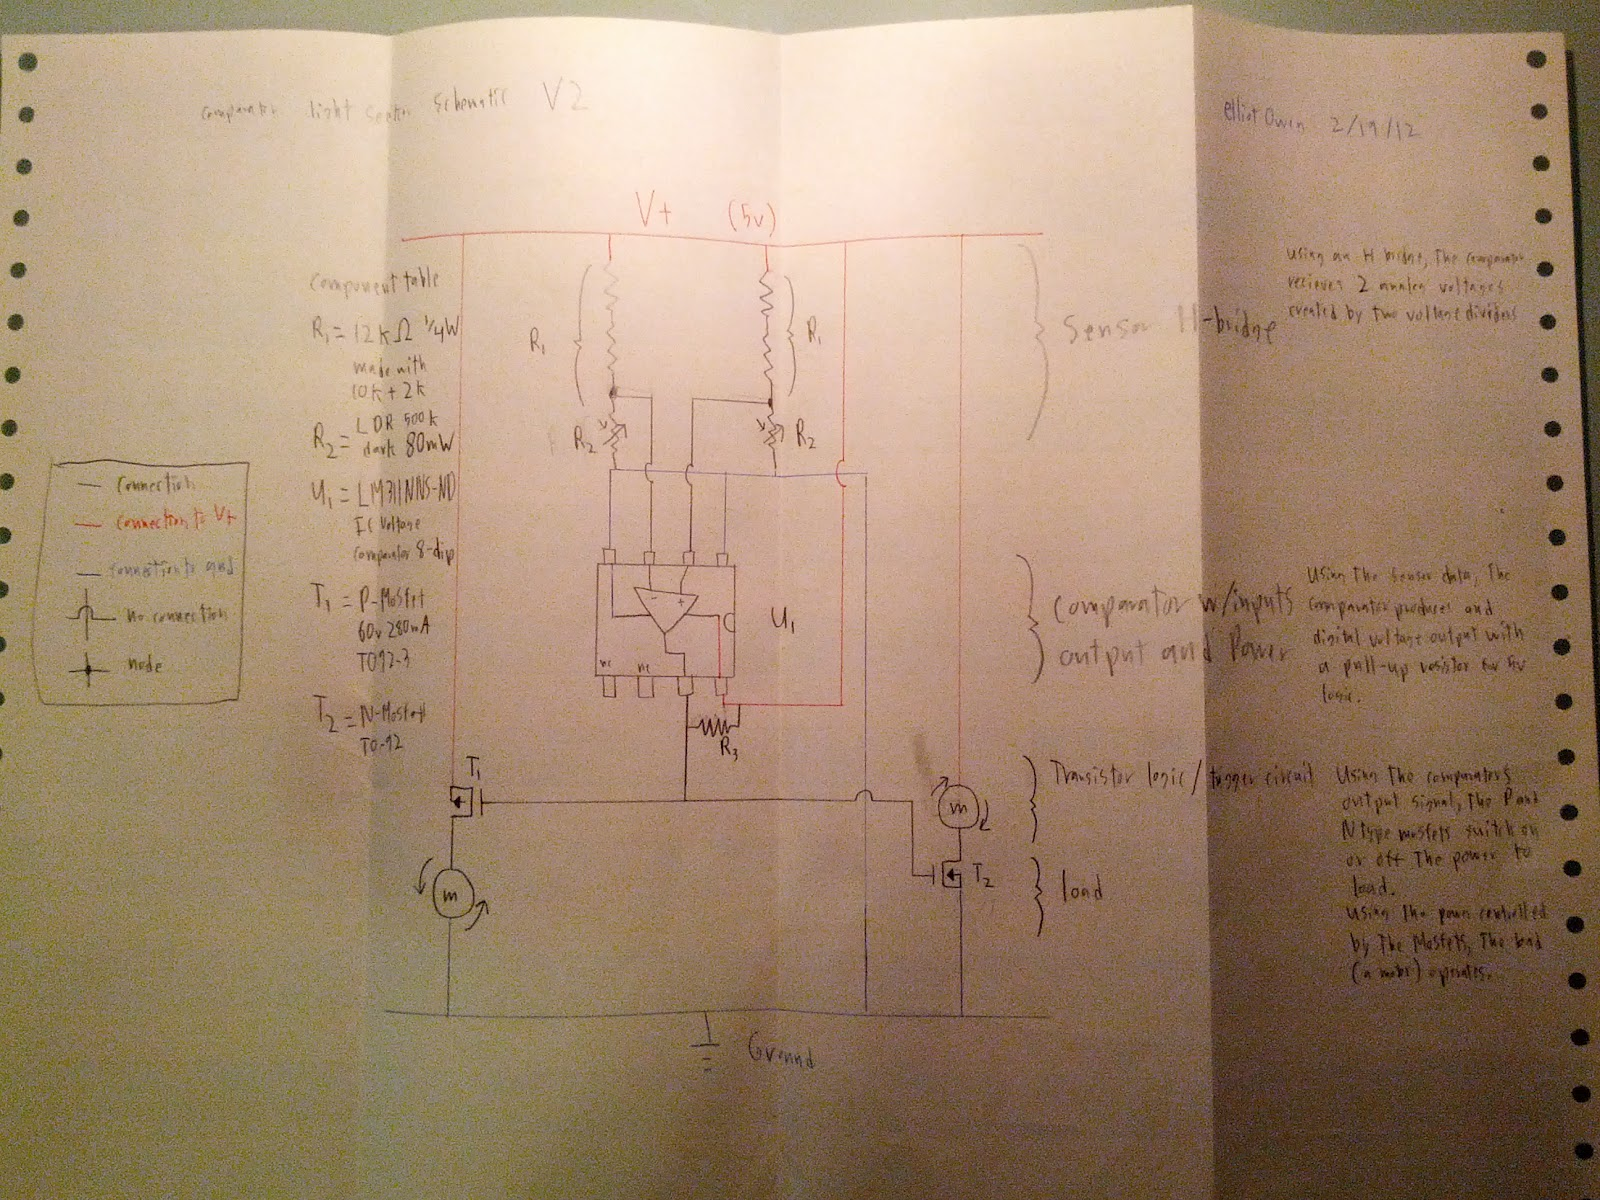 Robotic Circuit Page 3 Automation Circuits In Autonomous Robotics Opamp Lm324 Start With Of Why The Impossible Tribar Light Seeking Robot V1 V41